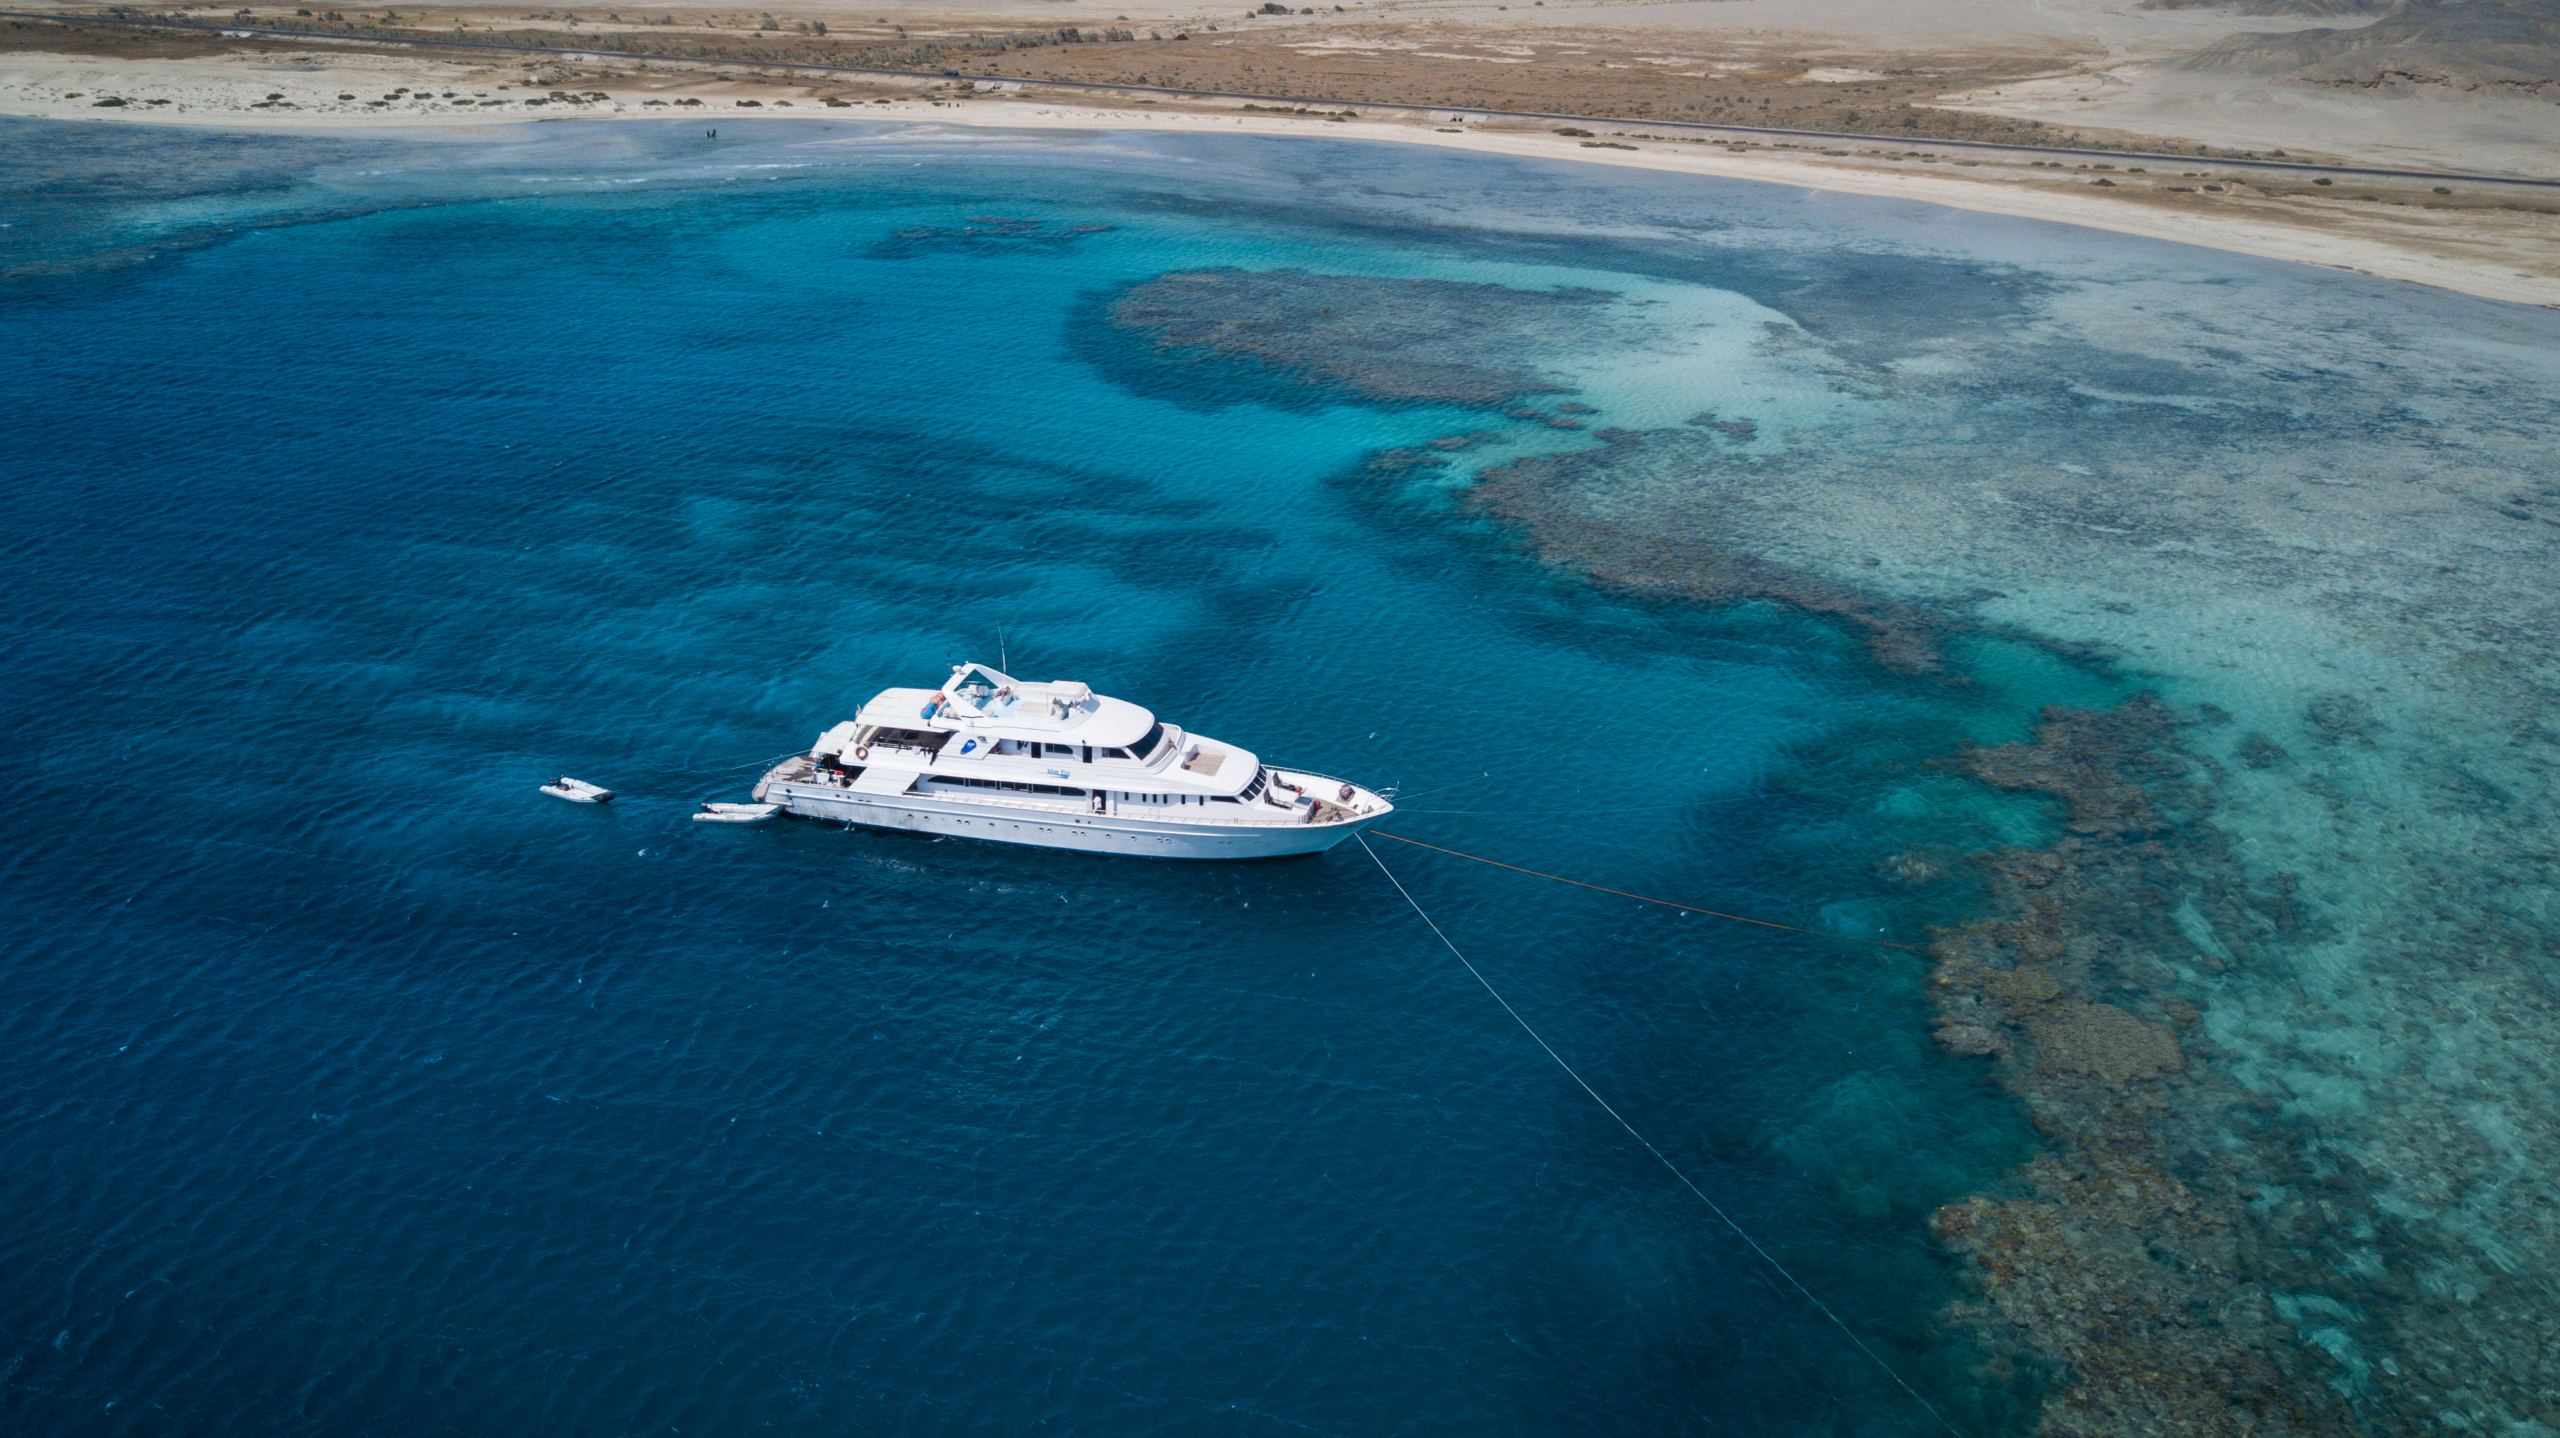 Blue Fin liveaboard yacht anchored in the Red Sea